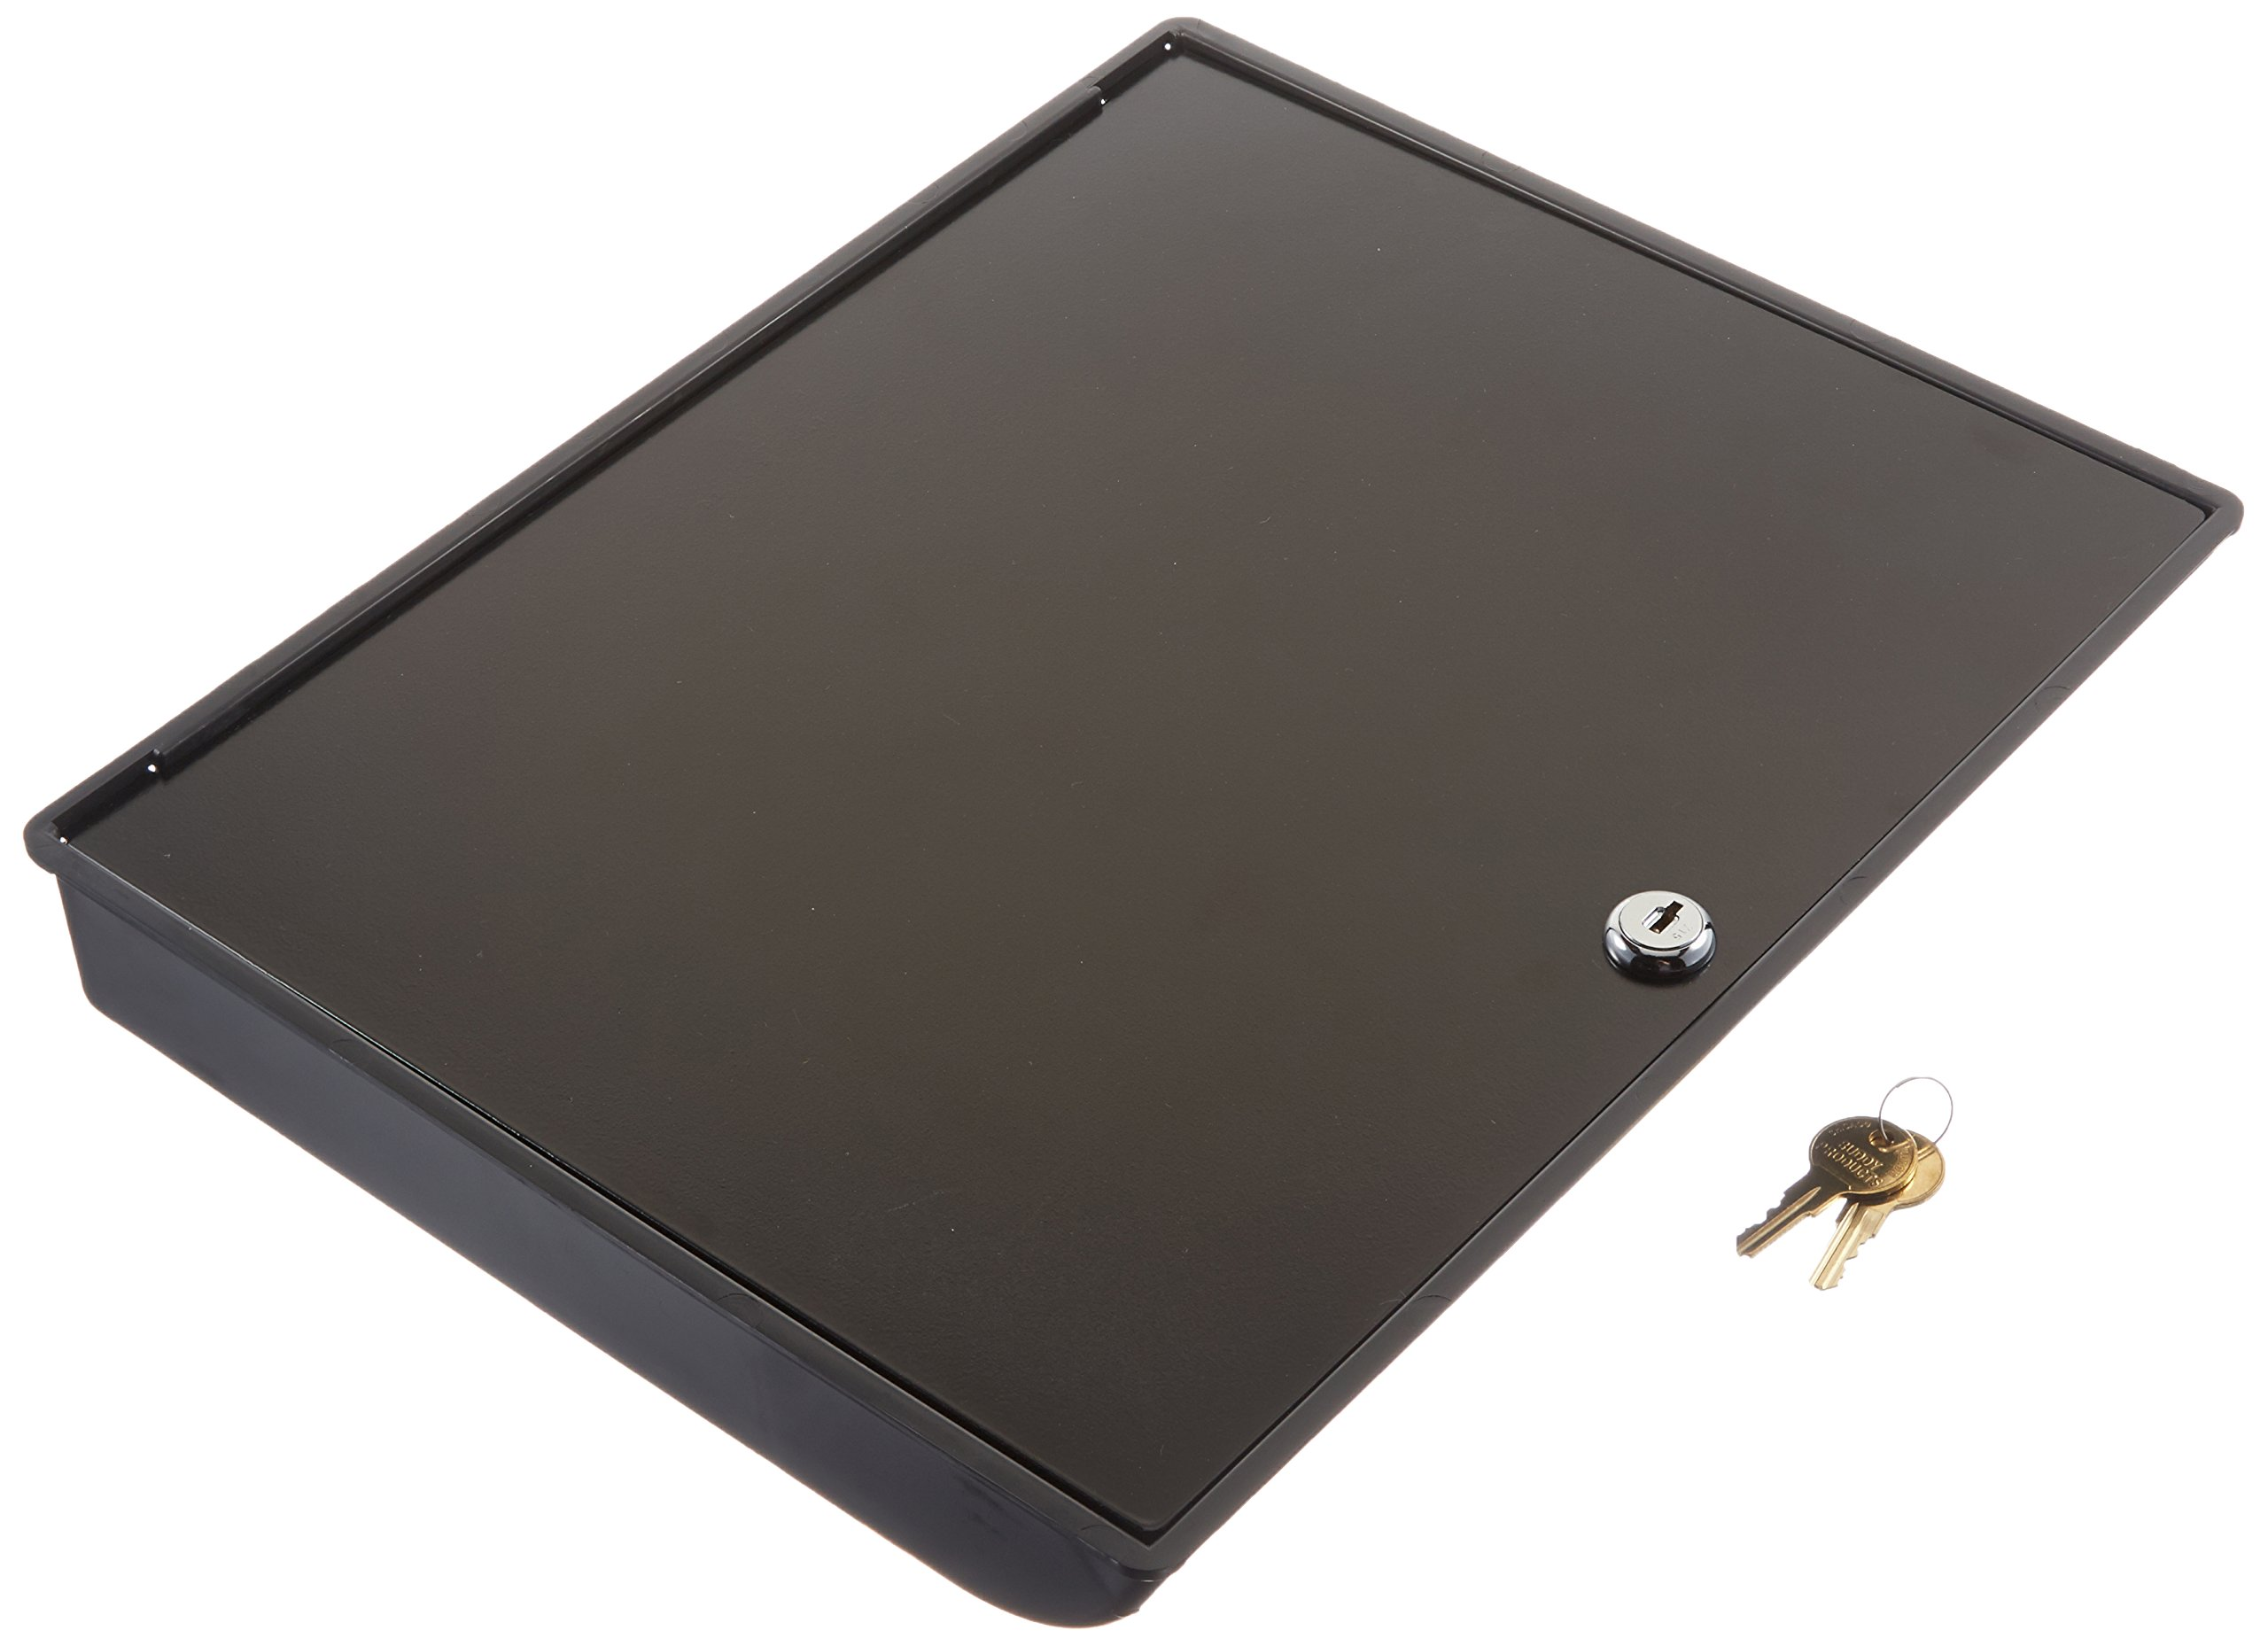 Buddy Products Coin and Bill Tray with Metal Security Lid, 11.5 x 2 x 14.375 Inches, Black (0544-4)